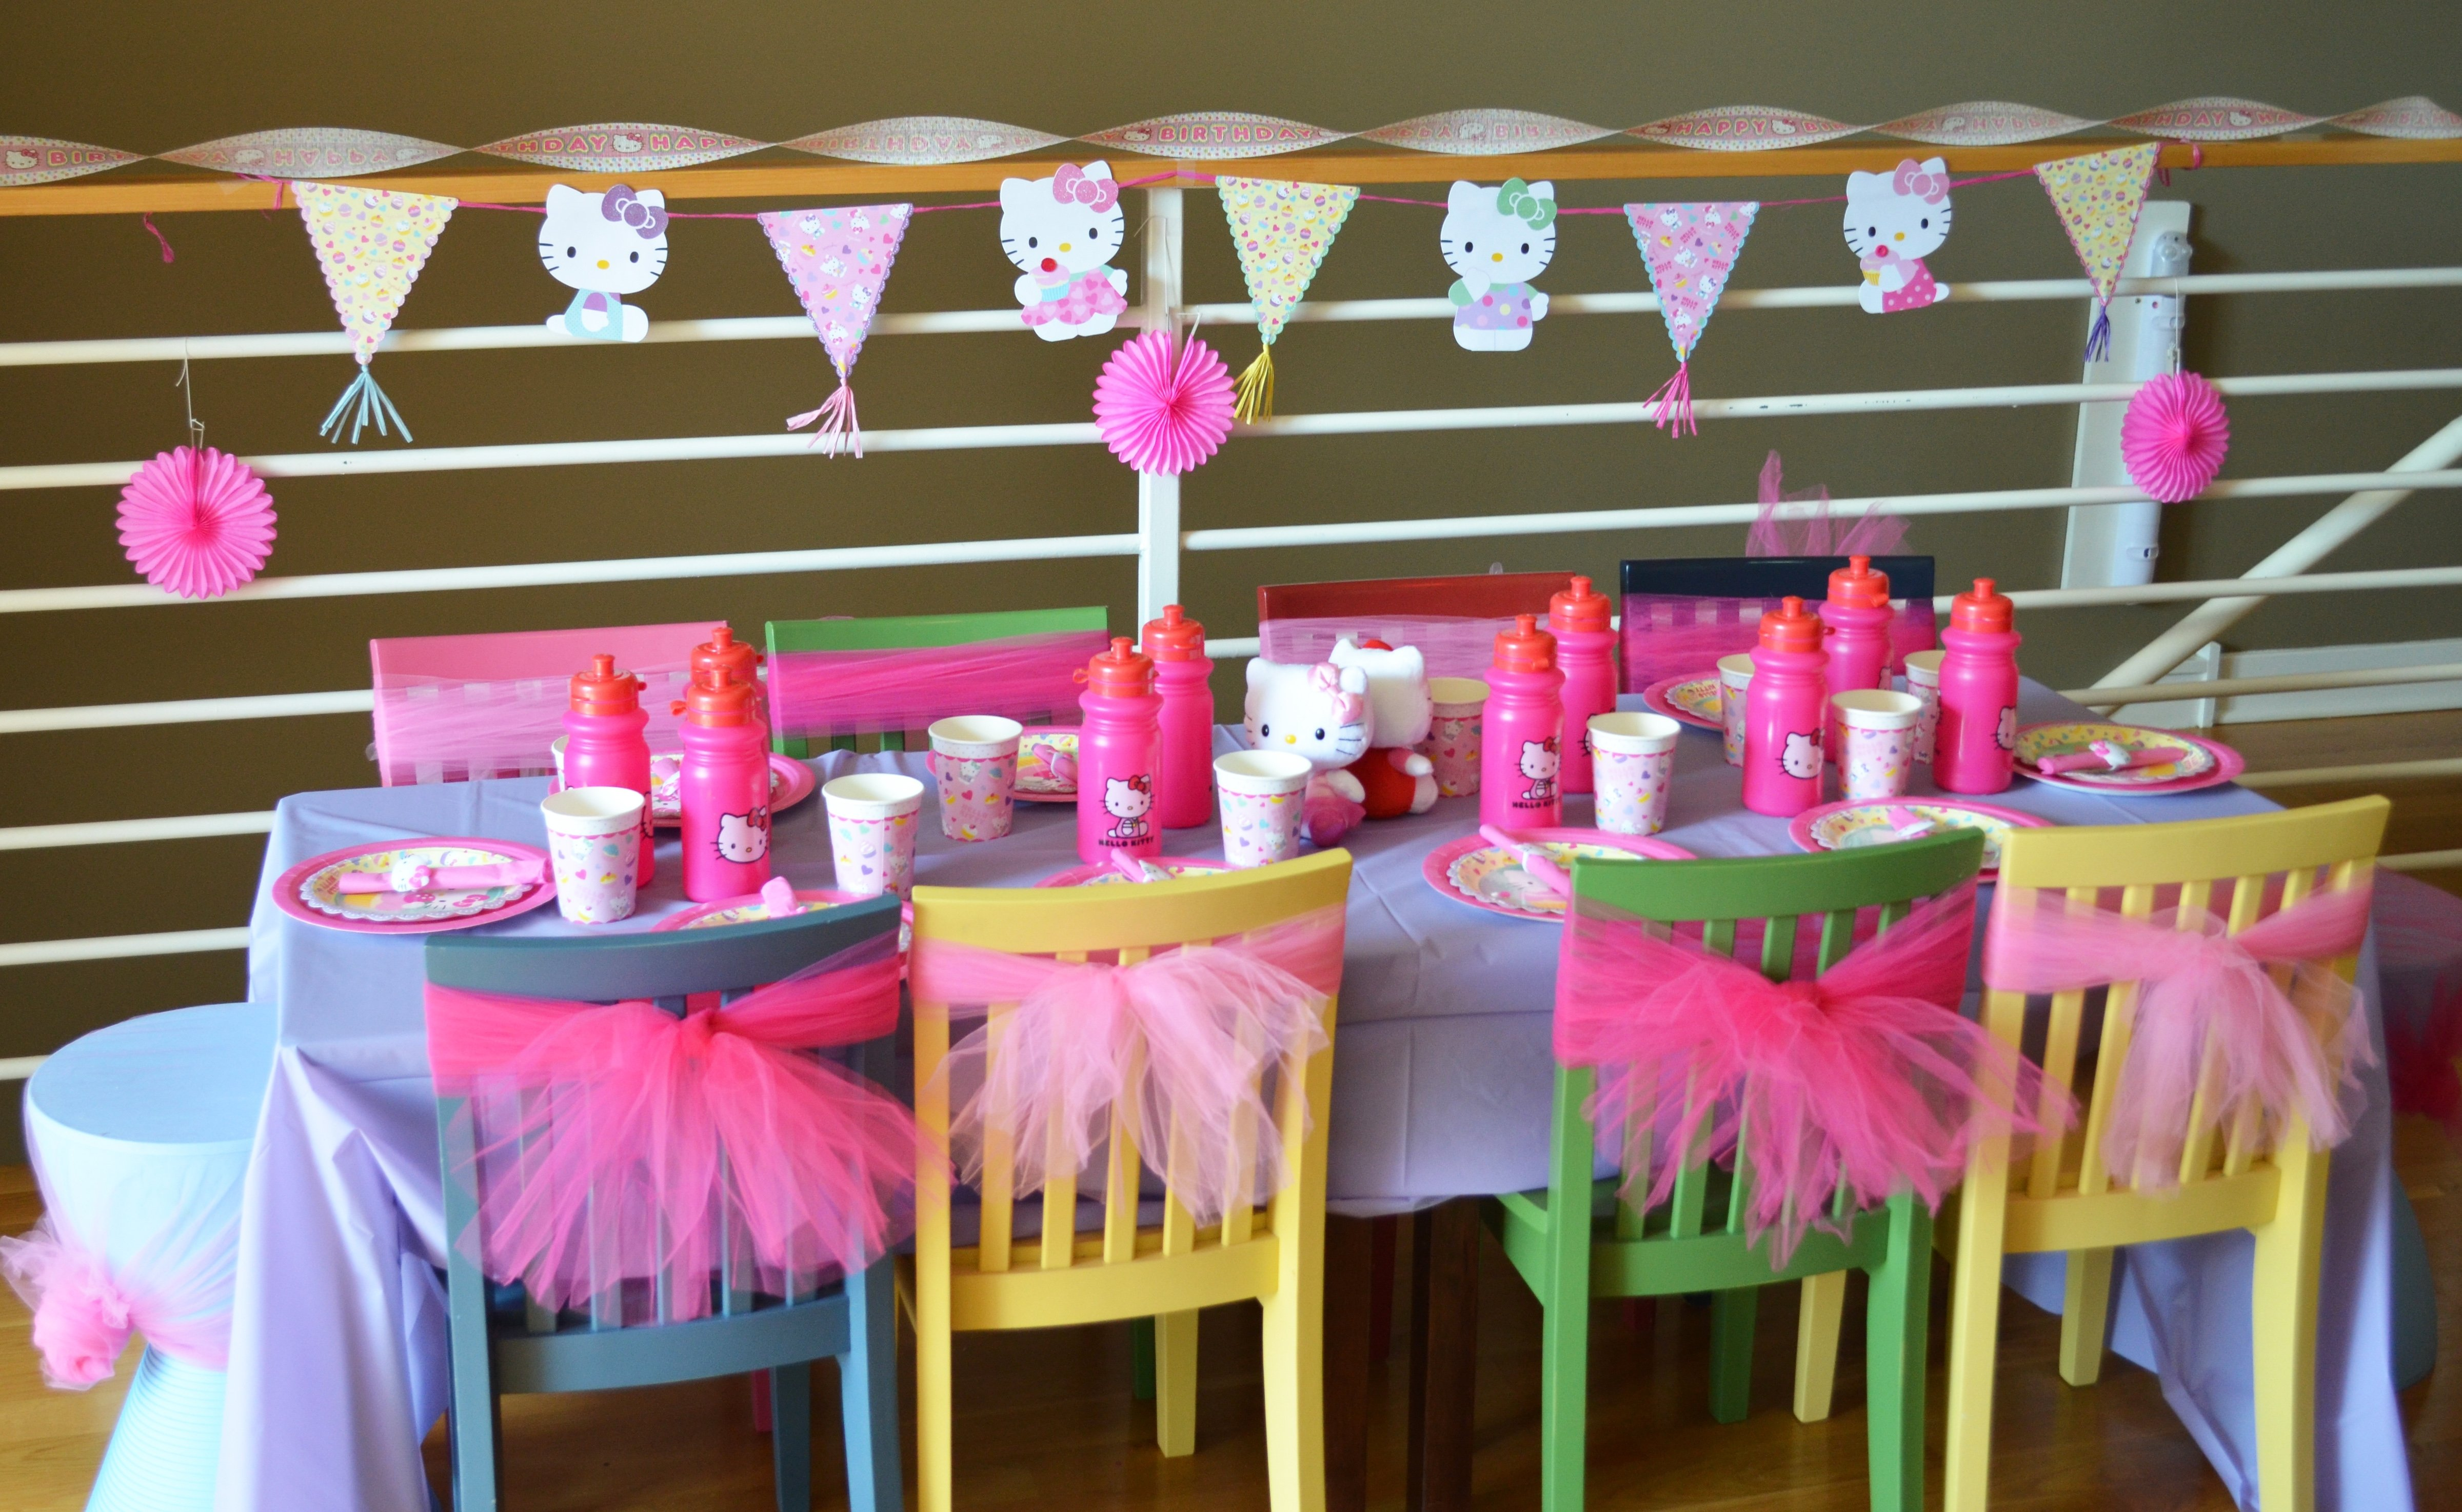 10 Famous 10 Yr Old Birthday Party Ideas 11 year old birthday party ideas at home home design ideas 9